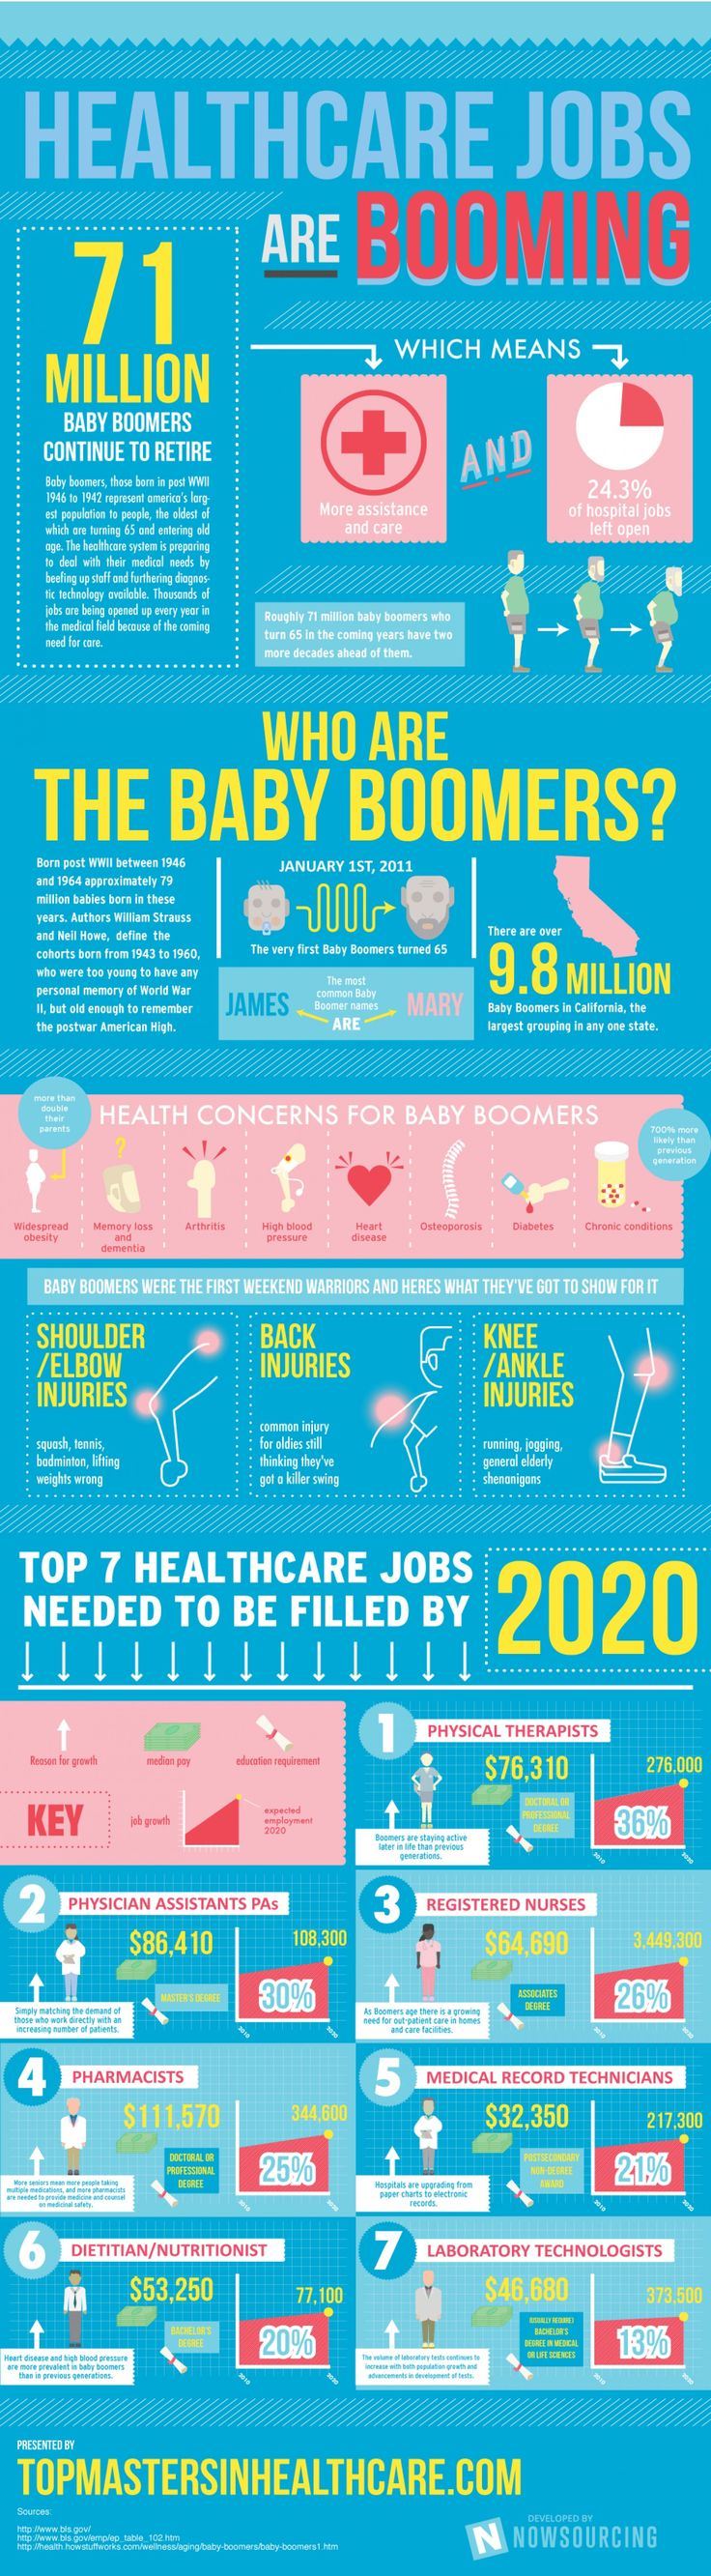 Healthcare Jobs are Booming Infographic (With images